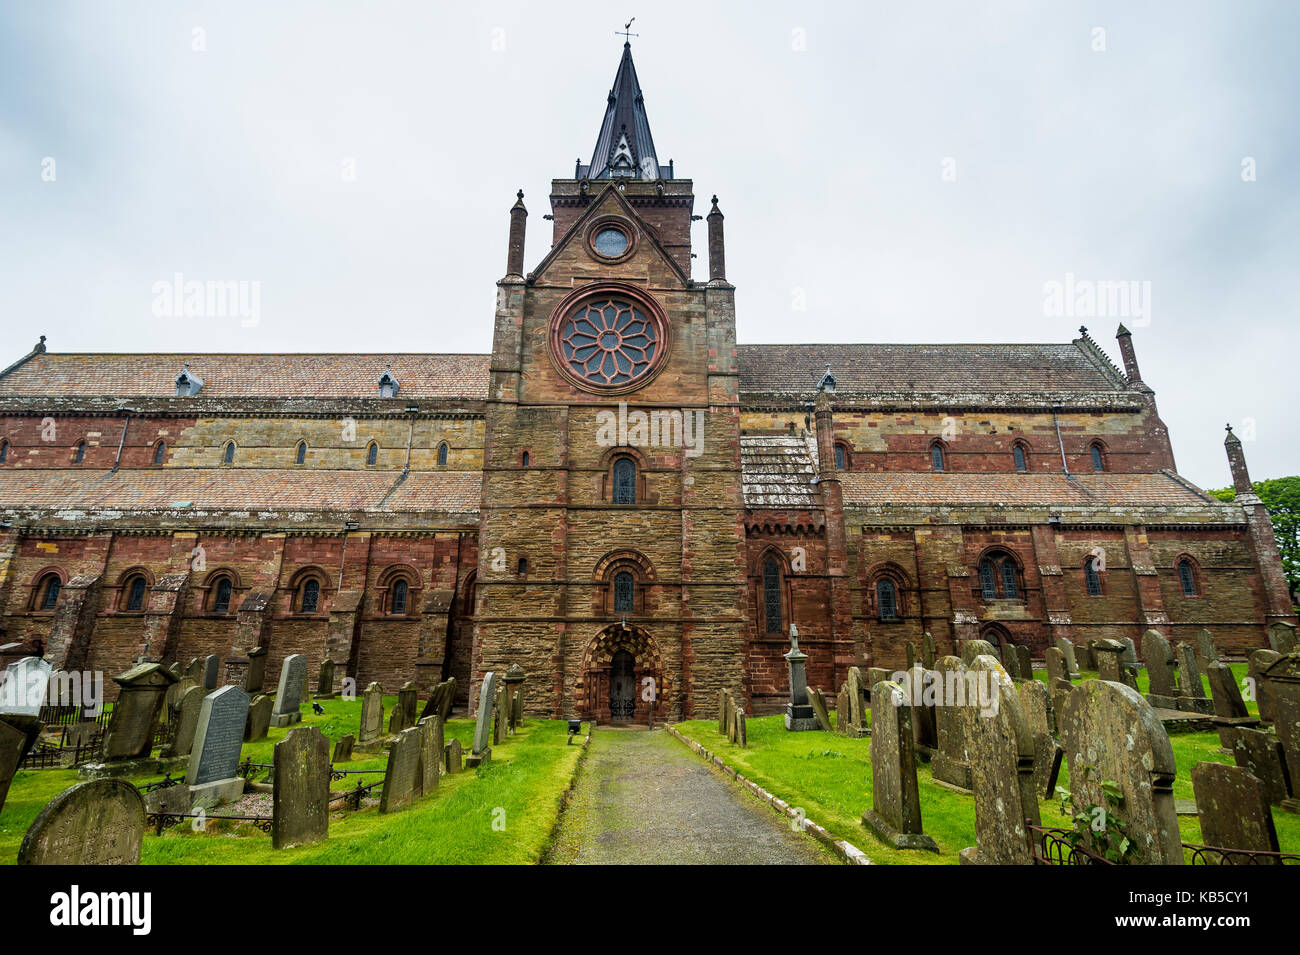 St. Magnus Cathedral, Kirkwall, Orkney Islands, Scotland, United Kingdom, Europe - Stock Image